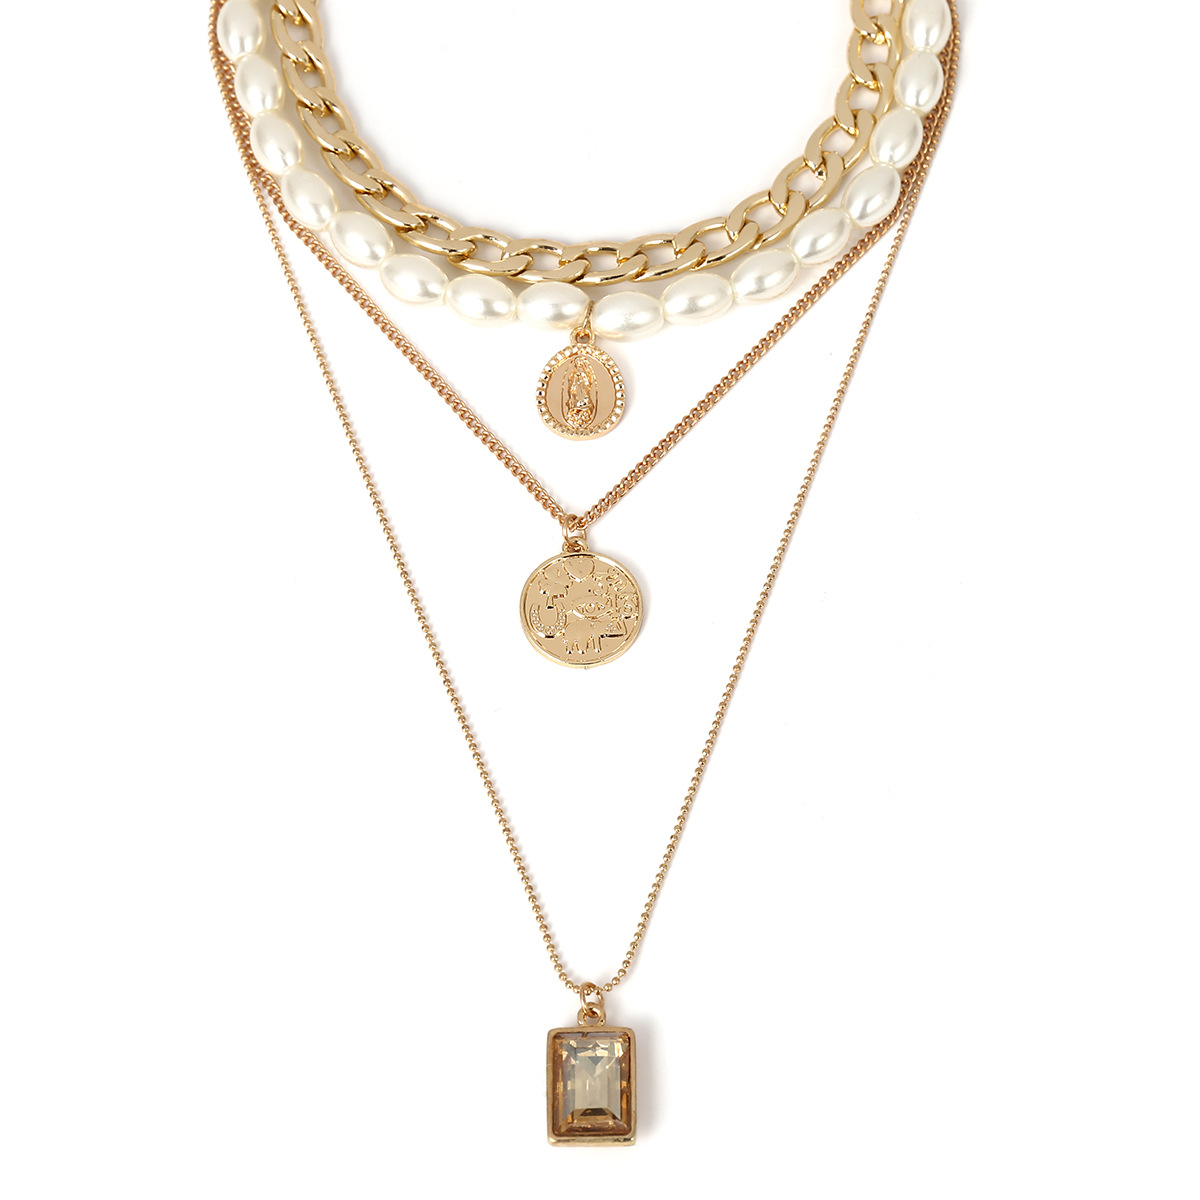 1ab1b7f2f4661 US $3.99 18% OFF|UOTOP Vintage Multilayer Pendant Necklace for Women Choker  Chain Imitation Pearl Necklace With Coin Charm Ladies Jewelry Bijoux-in ...